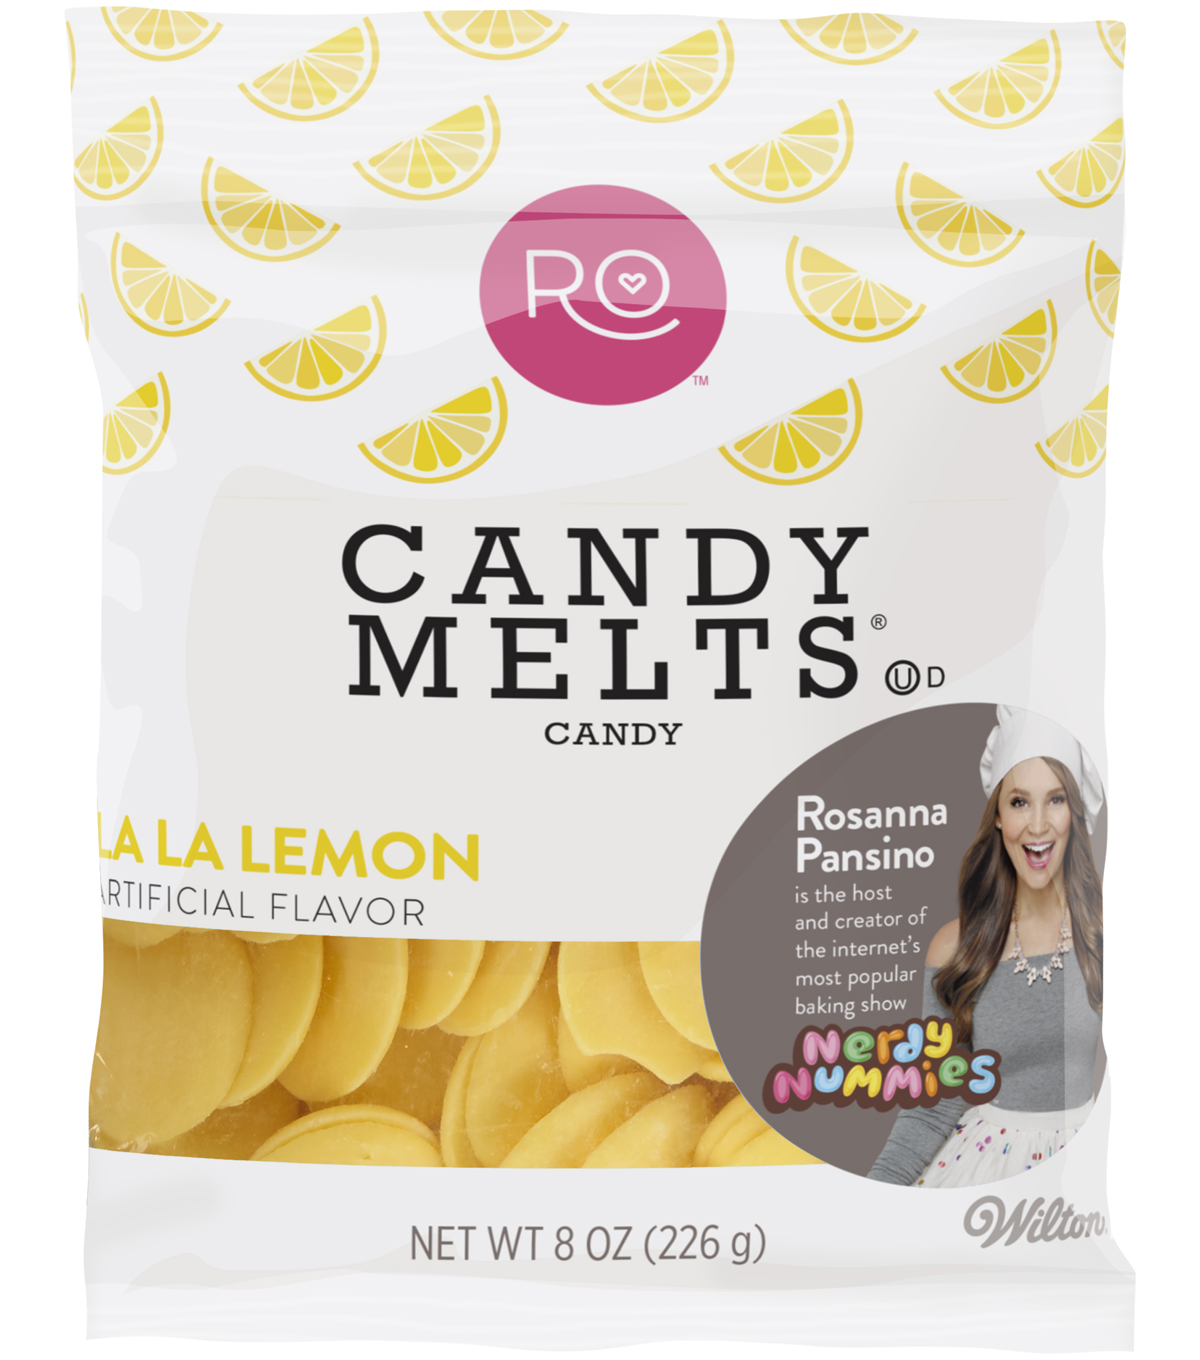 Rosanna Pansino By Wilton 8oz Candy Melts Candy-La La Lemon